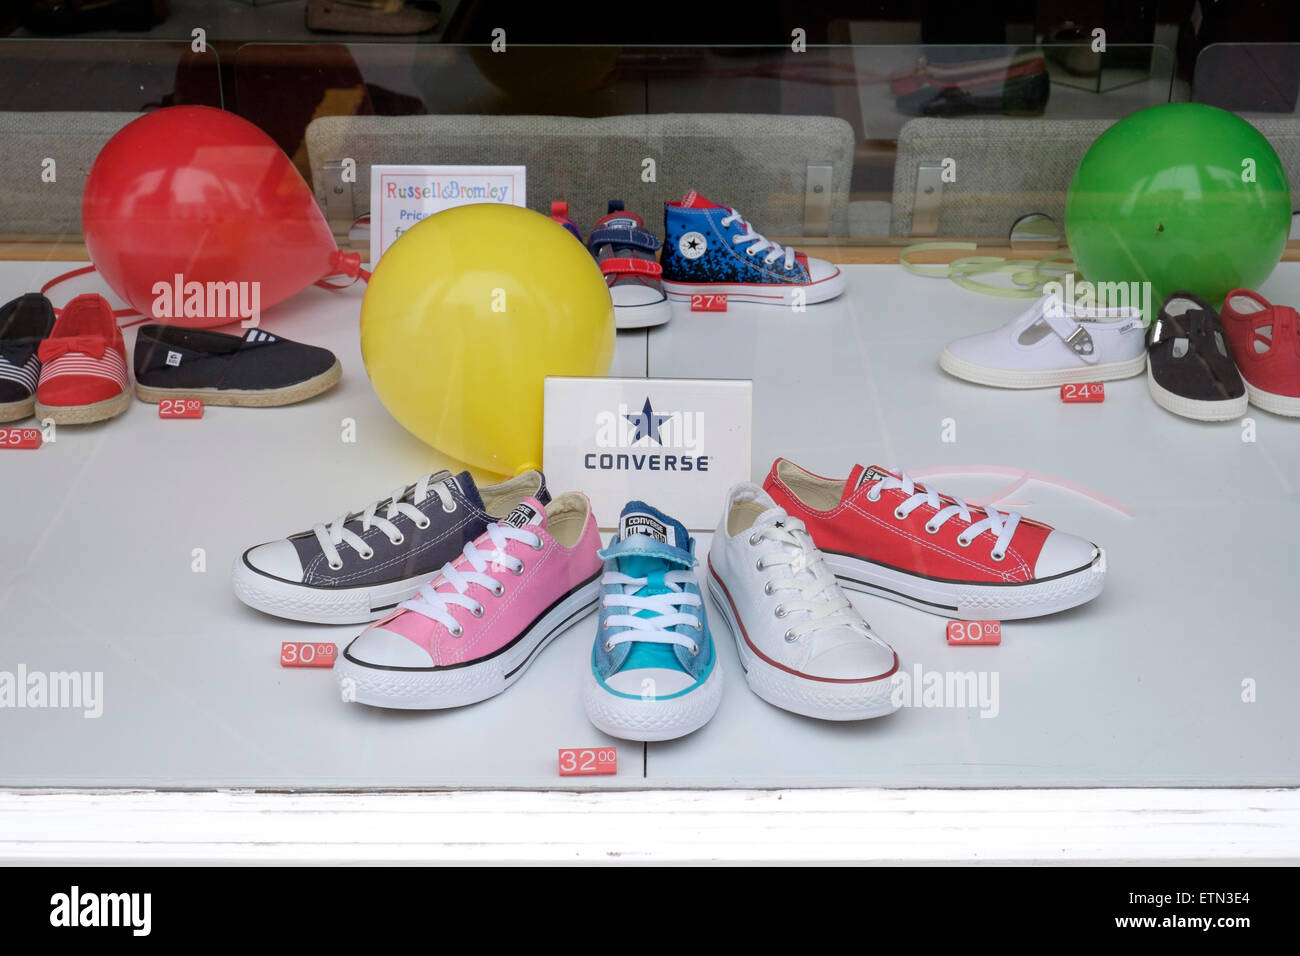 9d1b2b7a94d6 Children s Converse shoes displayed in a shoe shop window - Stock Image